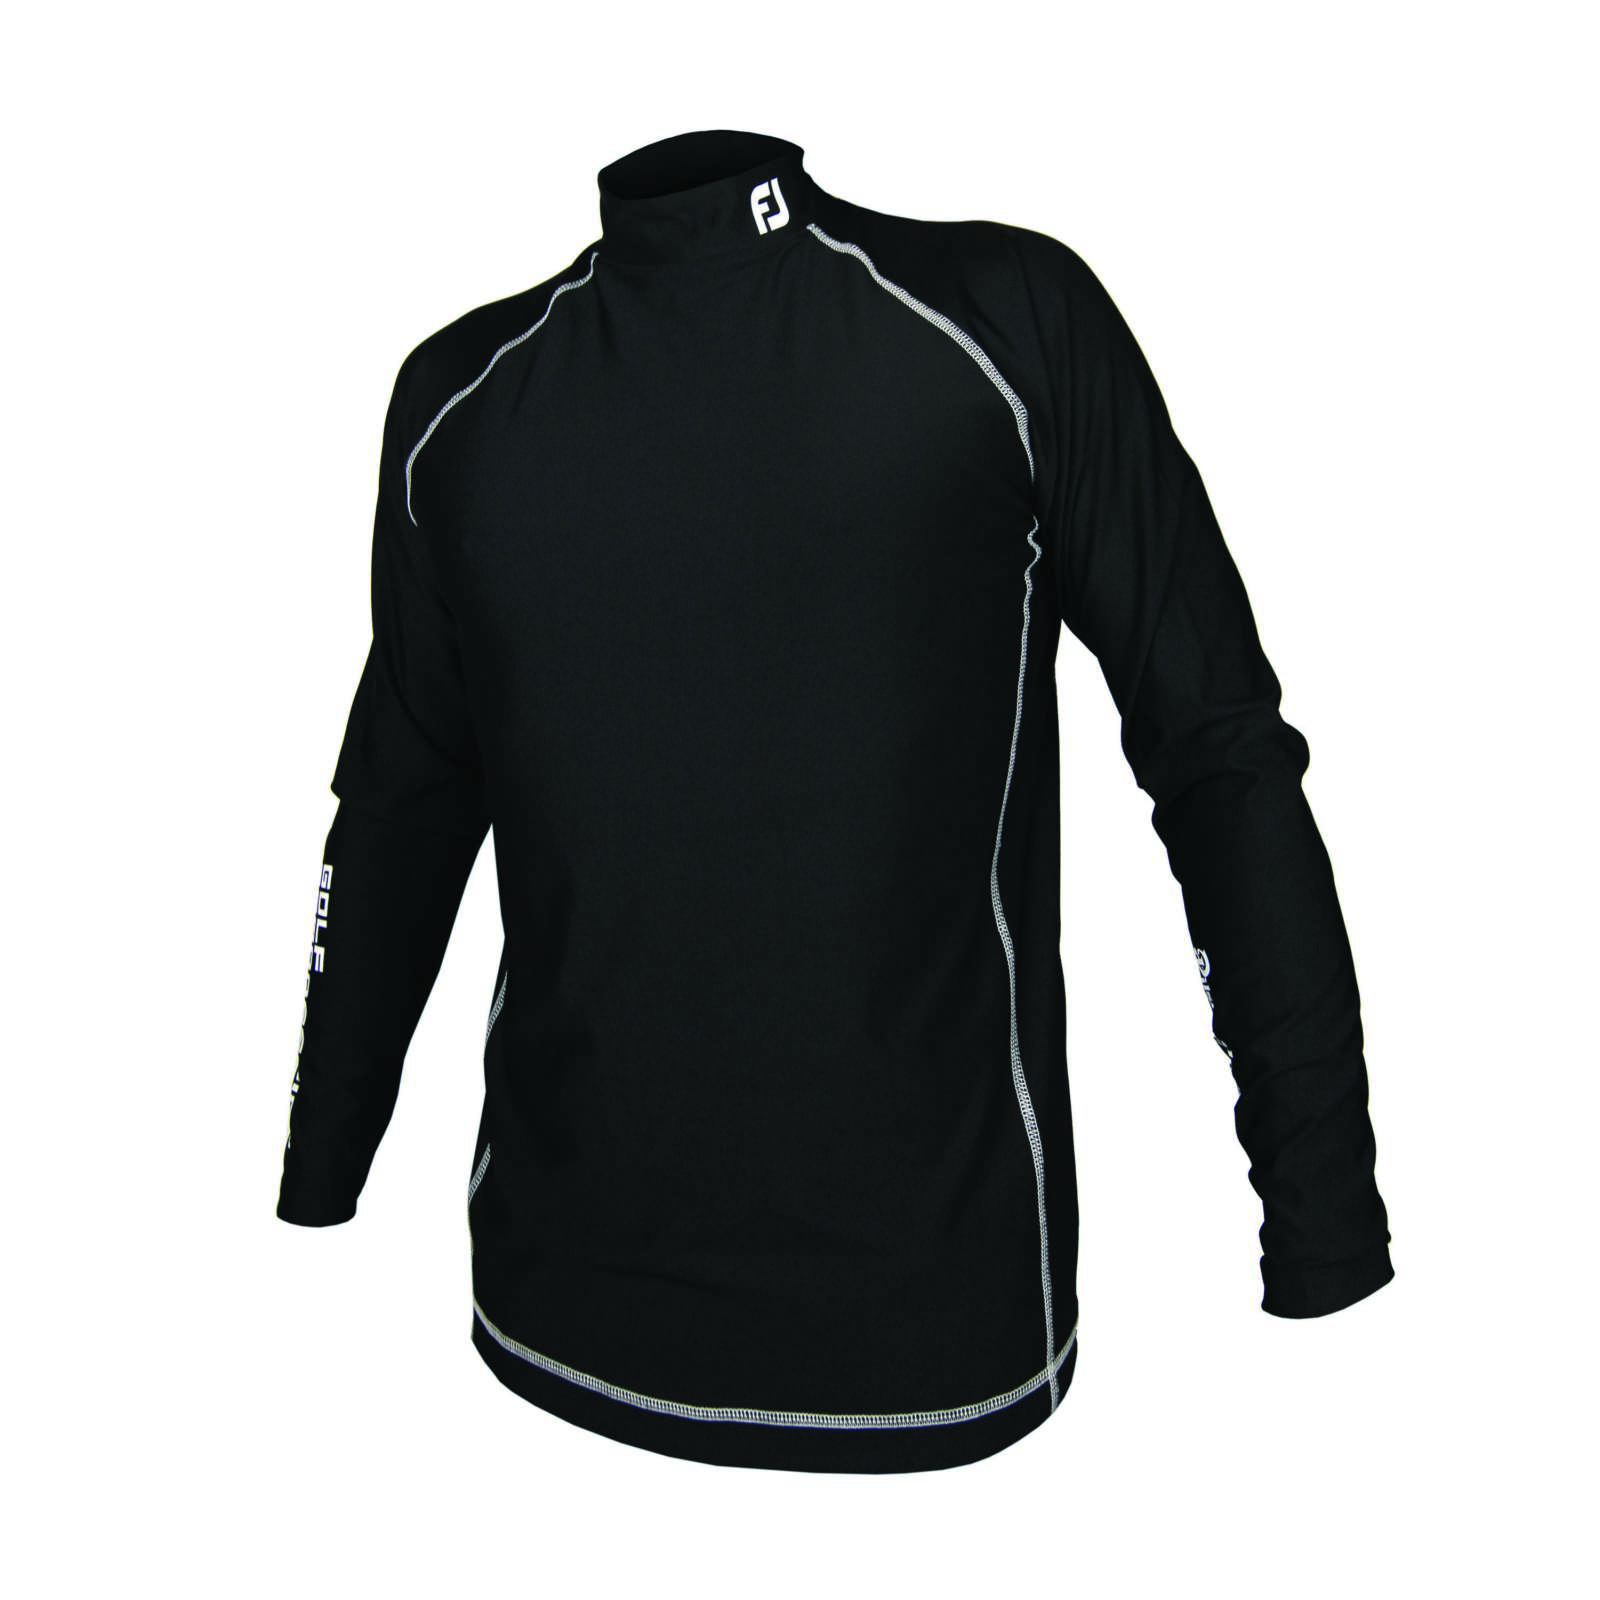 Men's Footjo shirt with long sleeves black